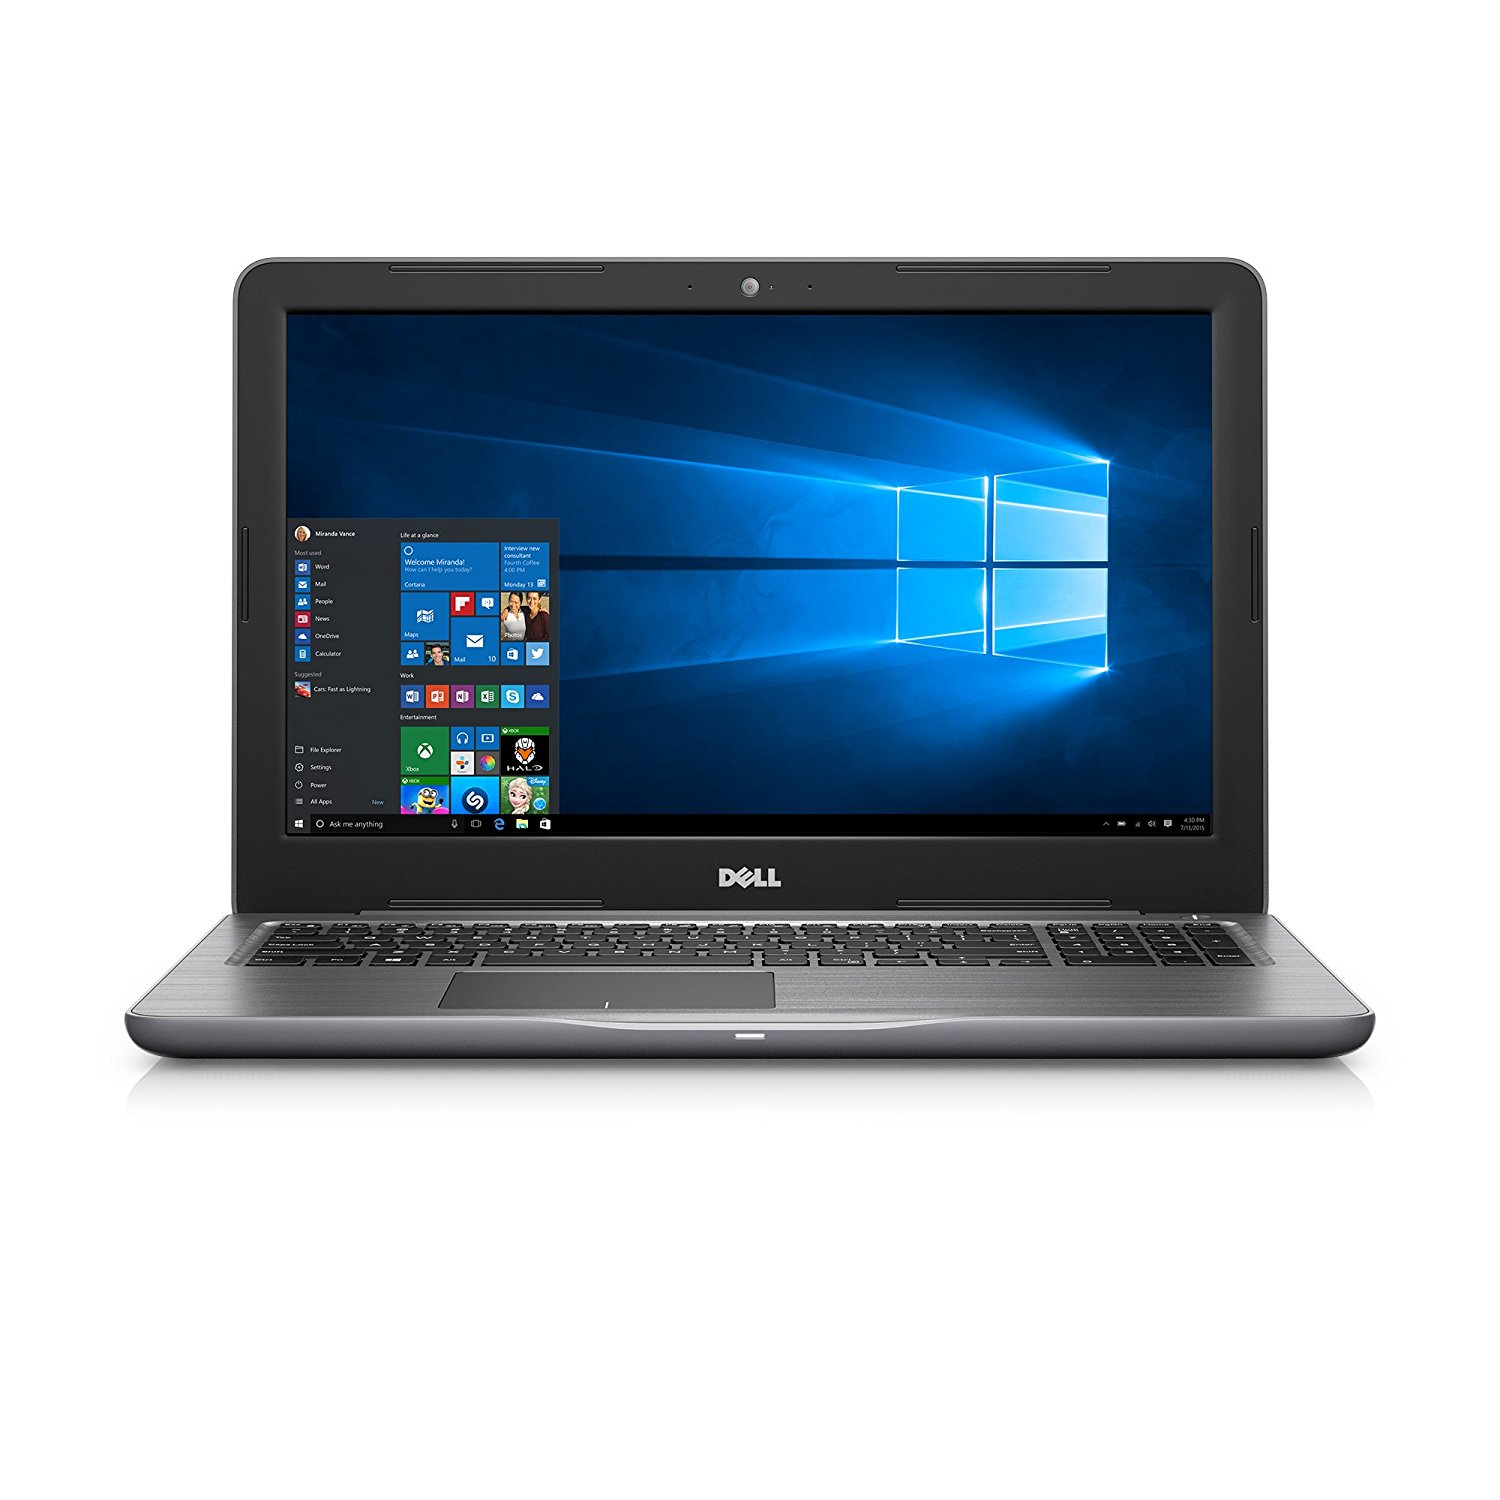 "Dell Inspiron i5567-1836GRY 15.6"" FHD Laptop (7th Generation i5, 8GB RAM, 1 TB HDD)"